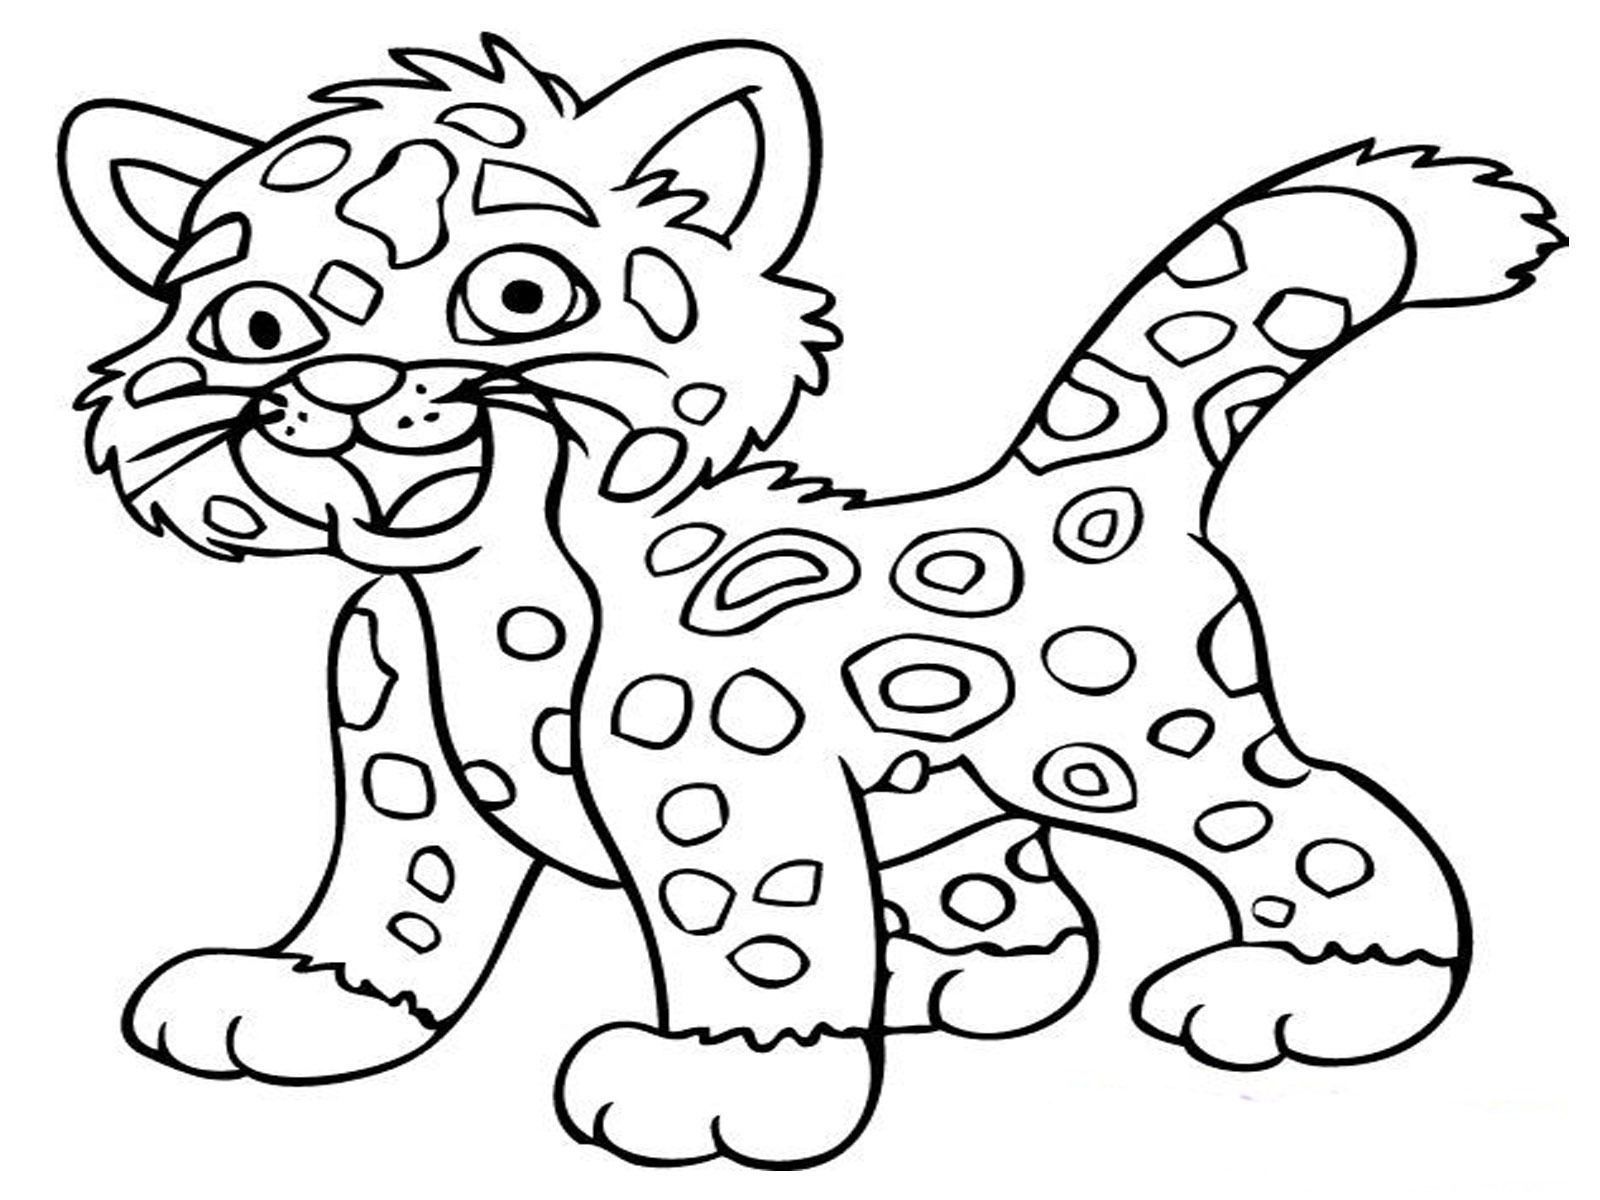 1600x1200 Drawn Jaguar Cat